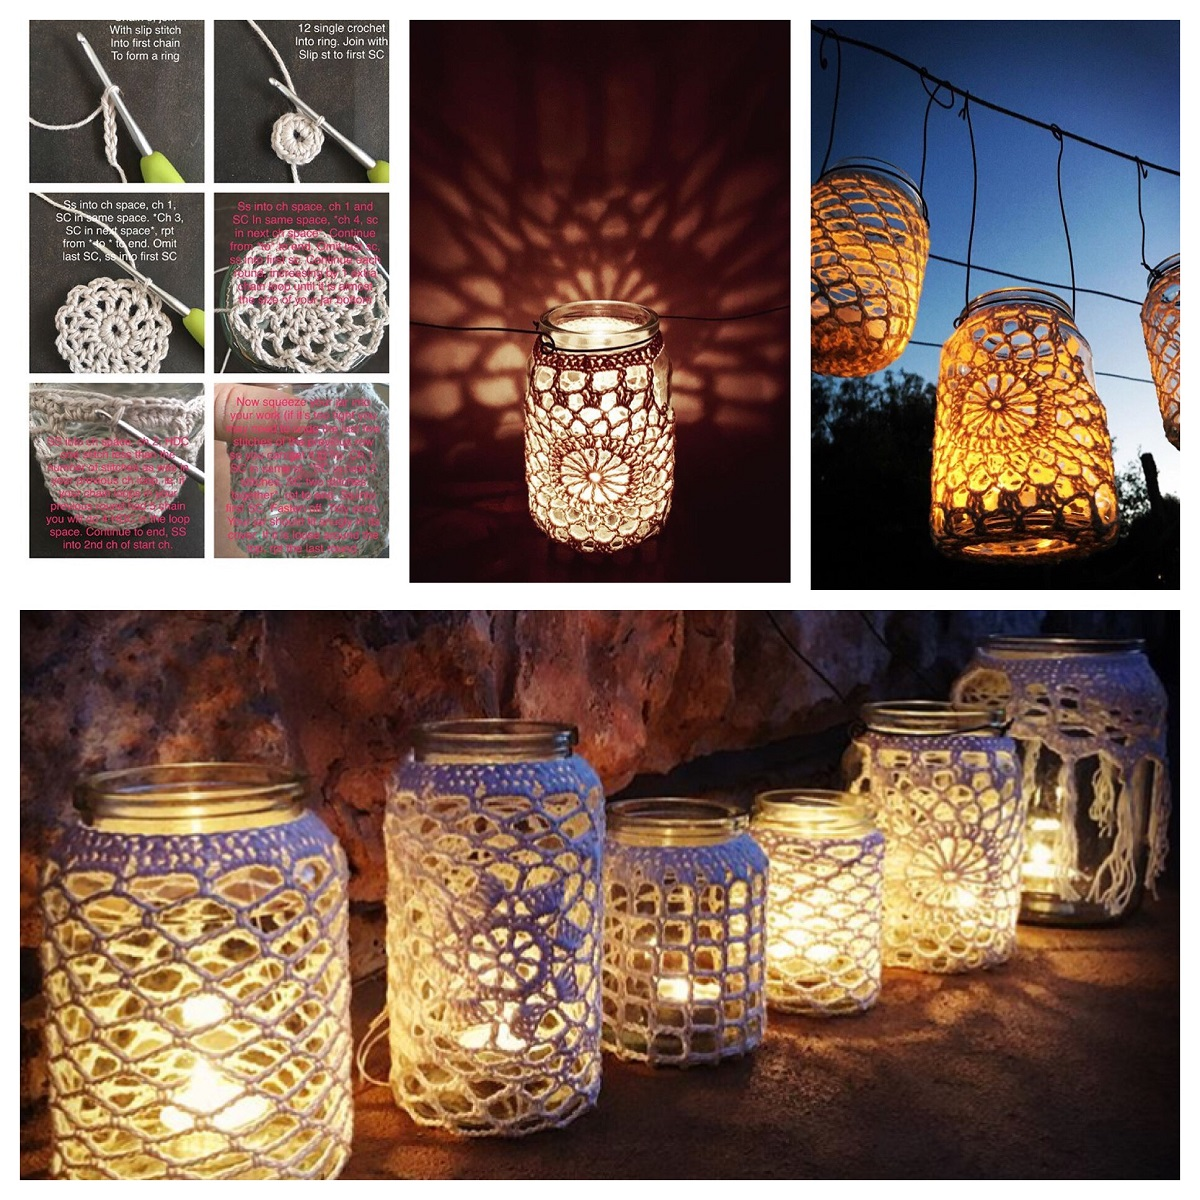 How to create your own crochet lantern cover - how to crochet a tealight lantern cover, step by step tutorial - advanced beginner level